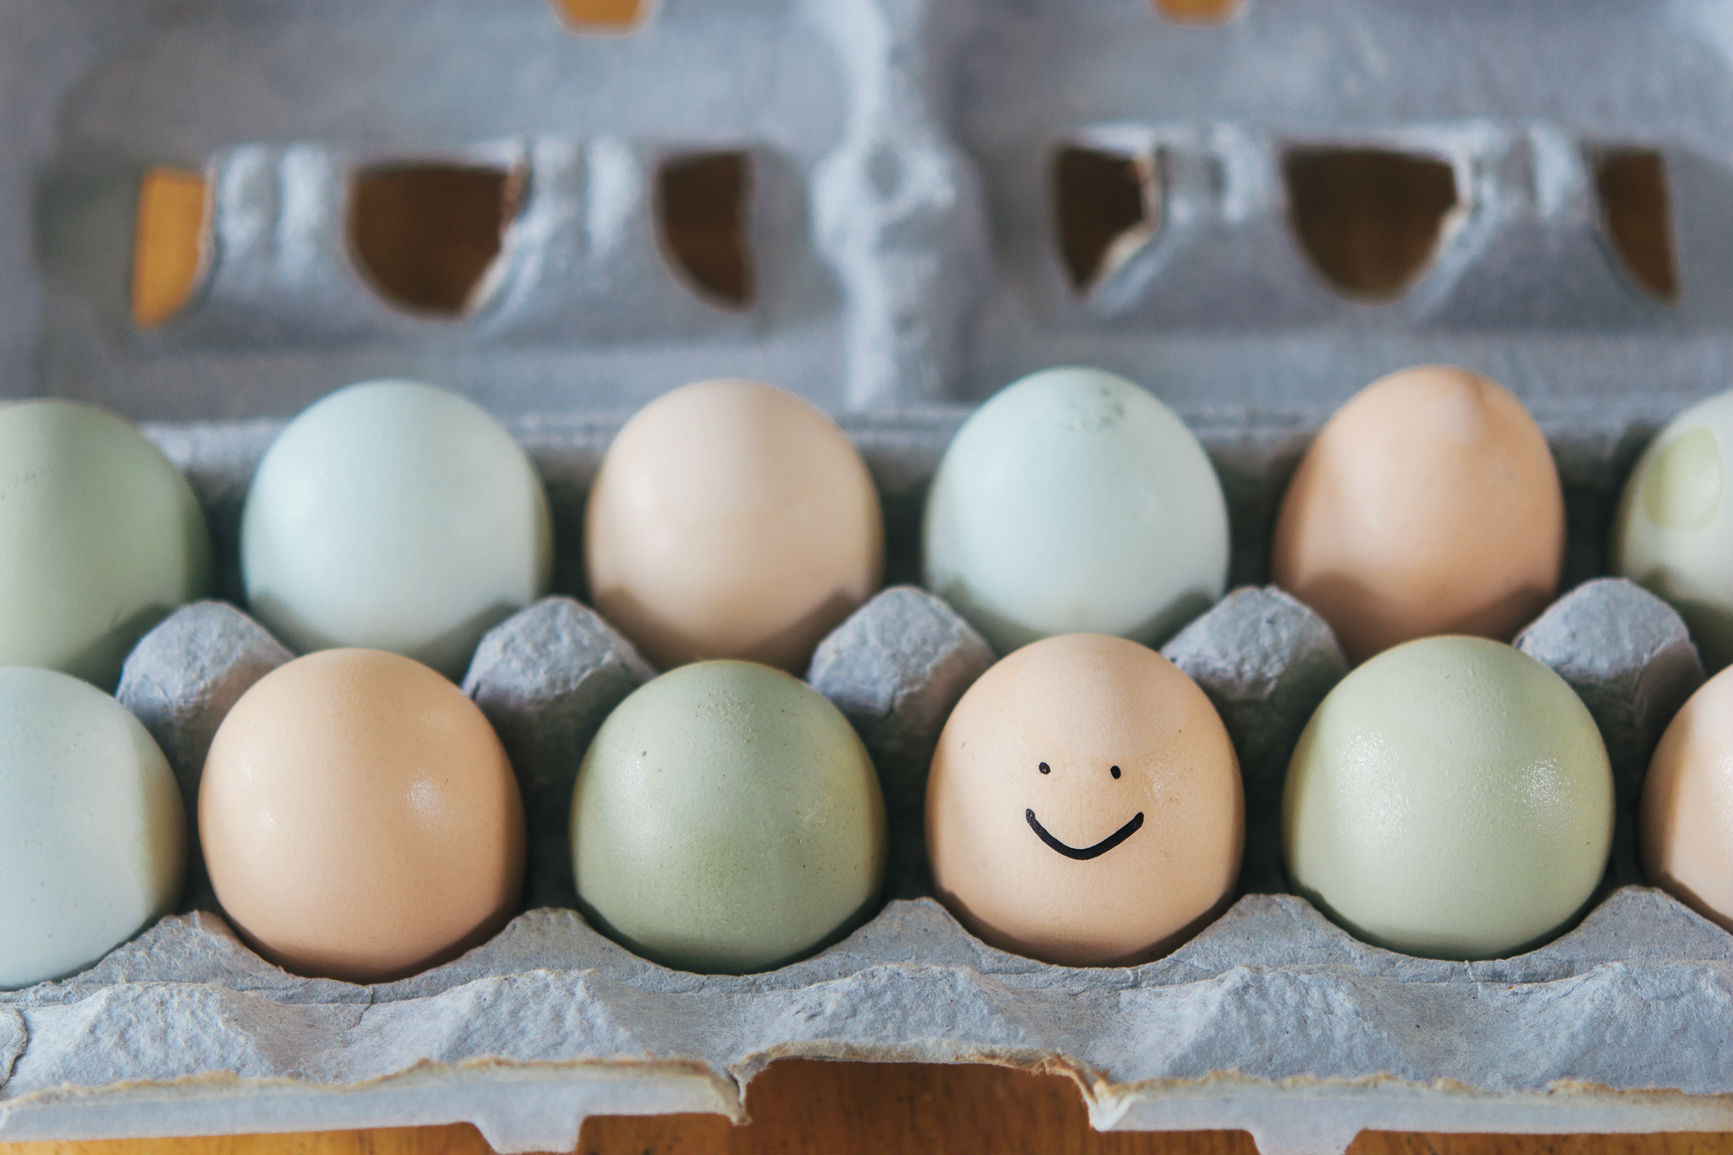 Eggs in a carton and one has a smiley face drawn on it